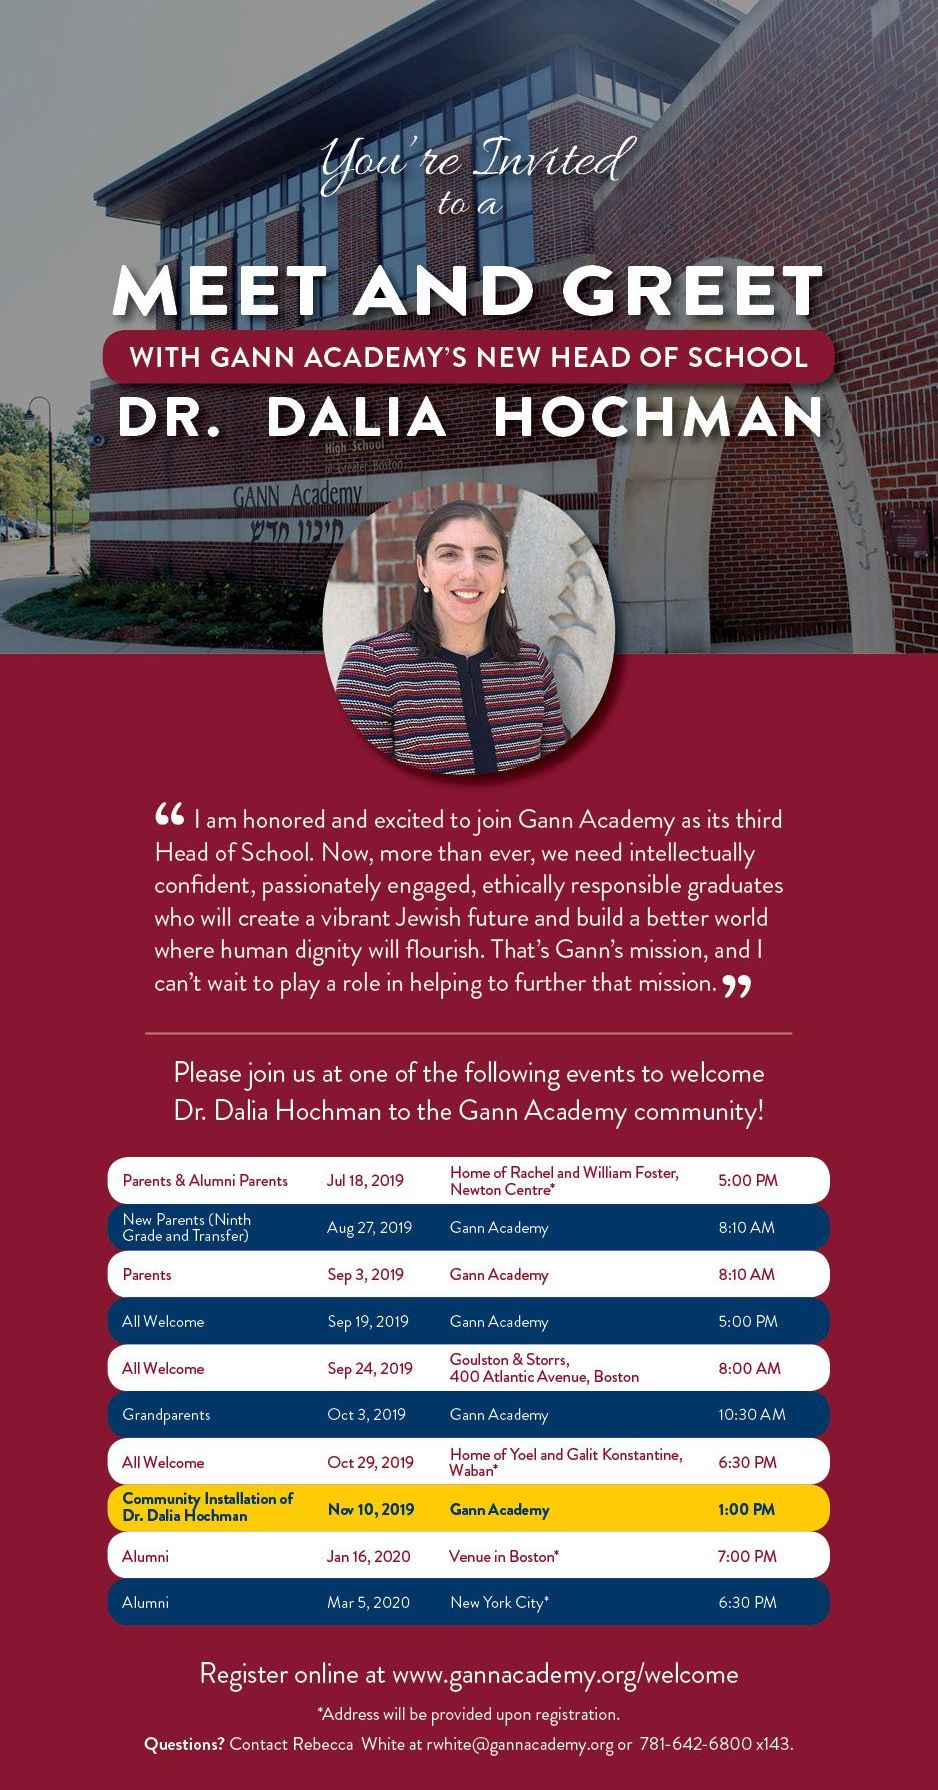 Gann Academy's new Head of School invites parents and alumni to a 'Meet & Greet' event